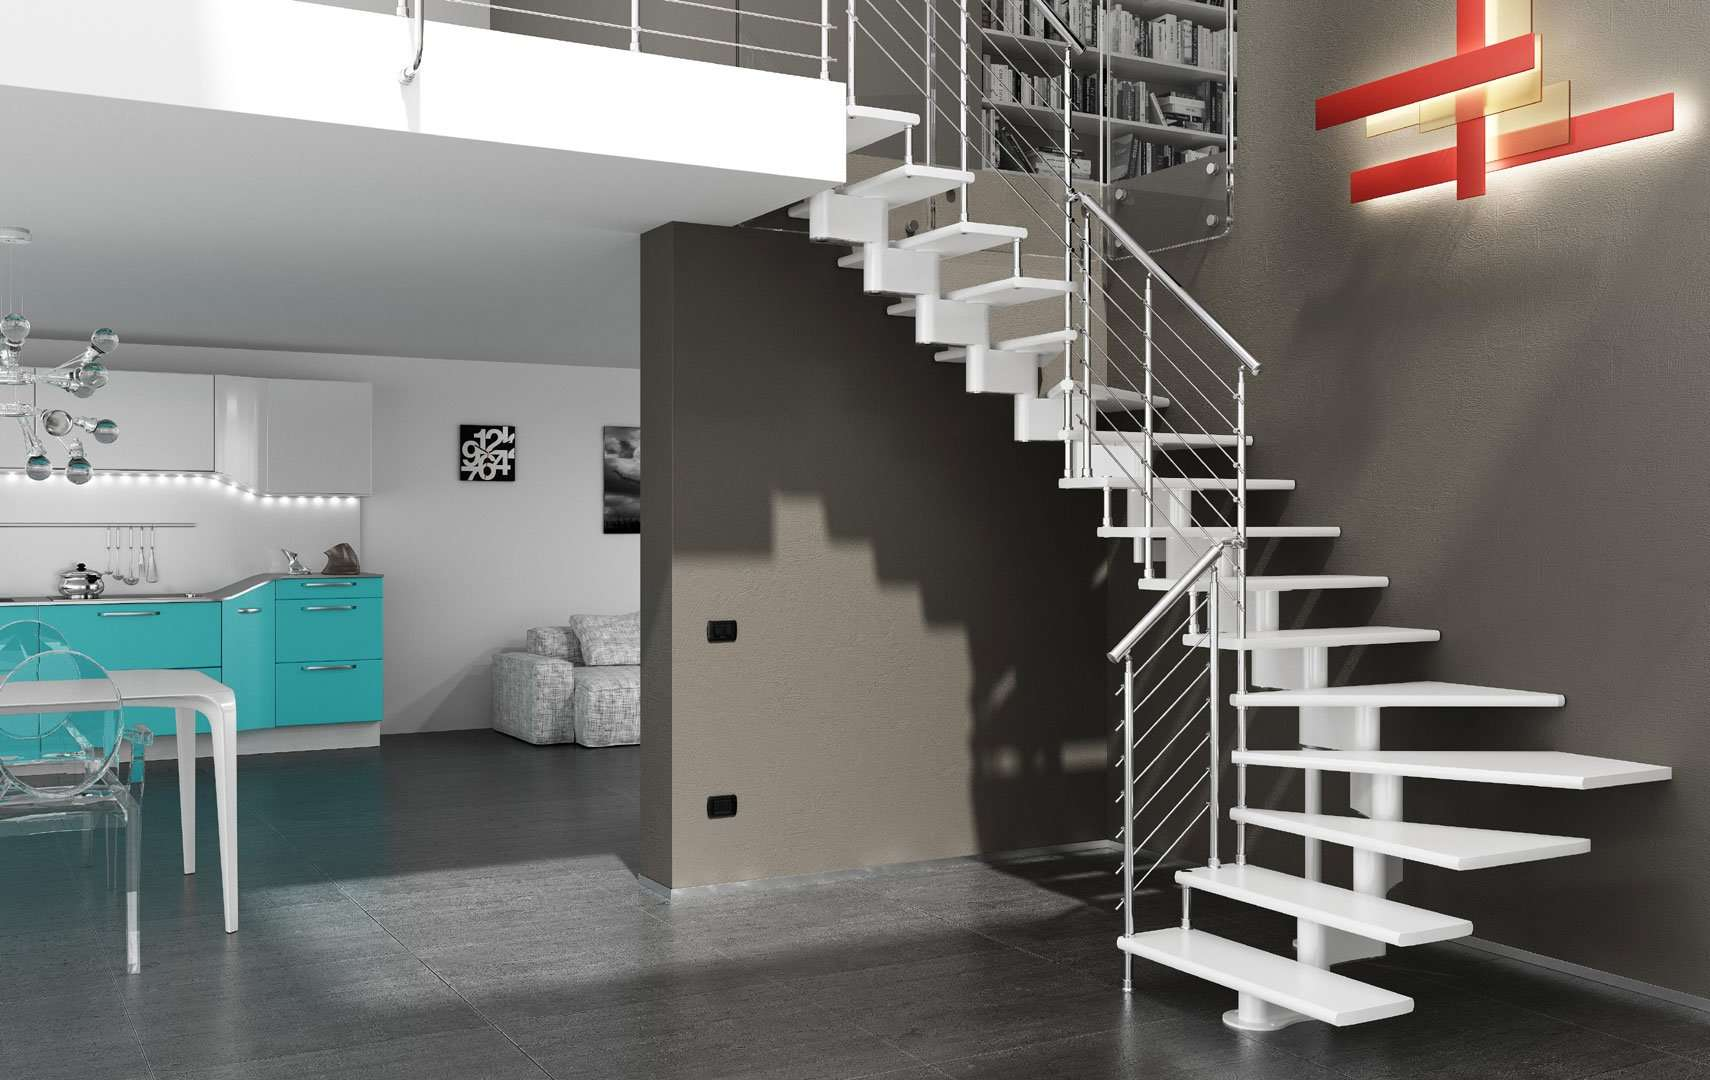 ᐅ Open Staircase Design Staircase Design Open Staircase Design